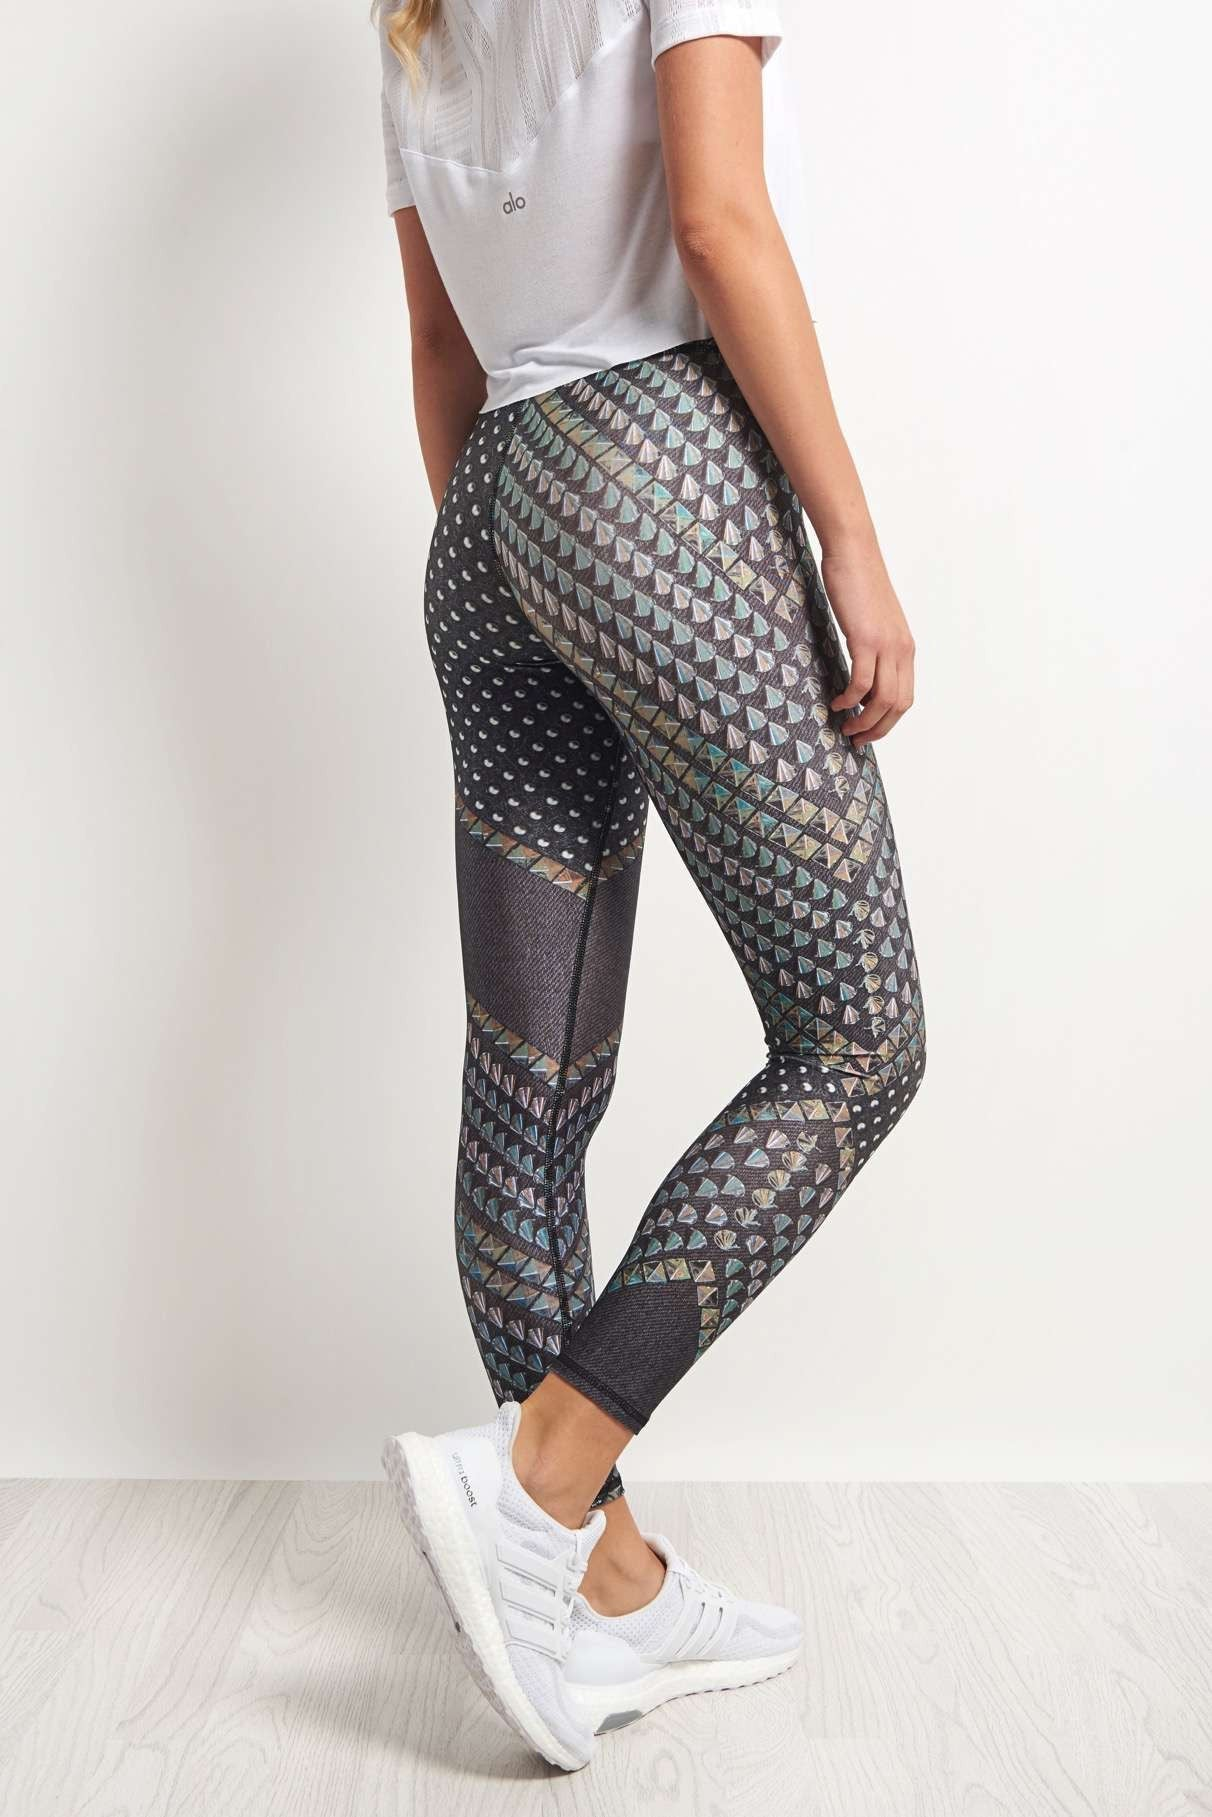 Terez You're a Stud Performance Legging image 2 - The Sports Edit